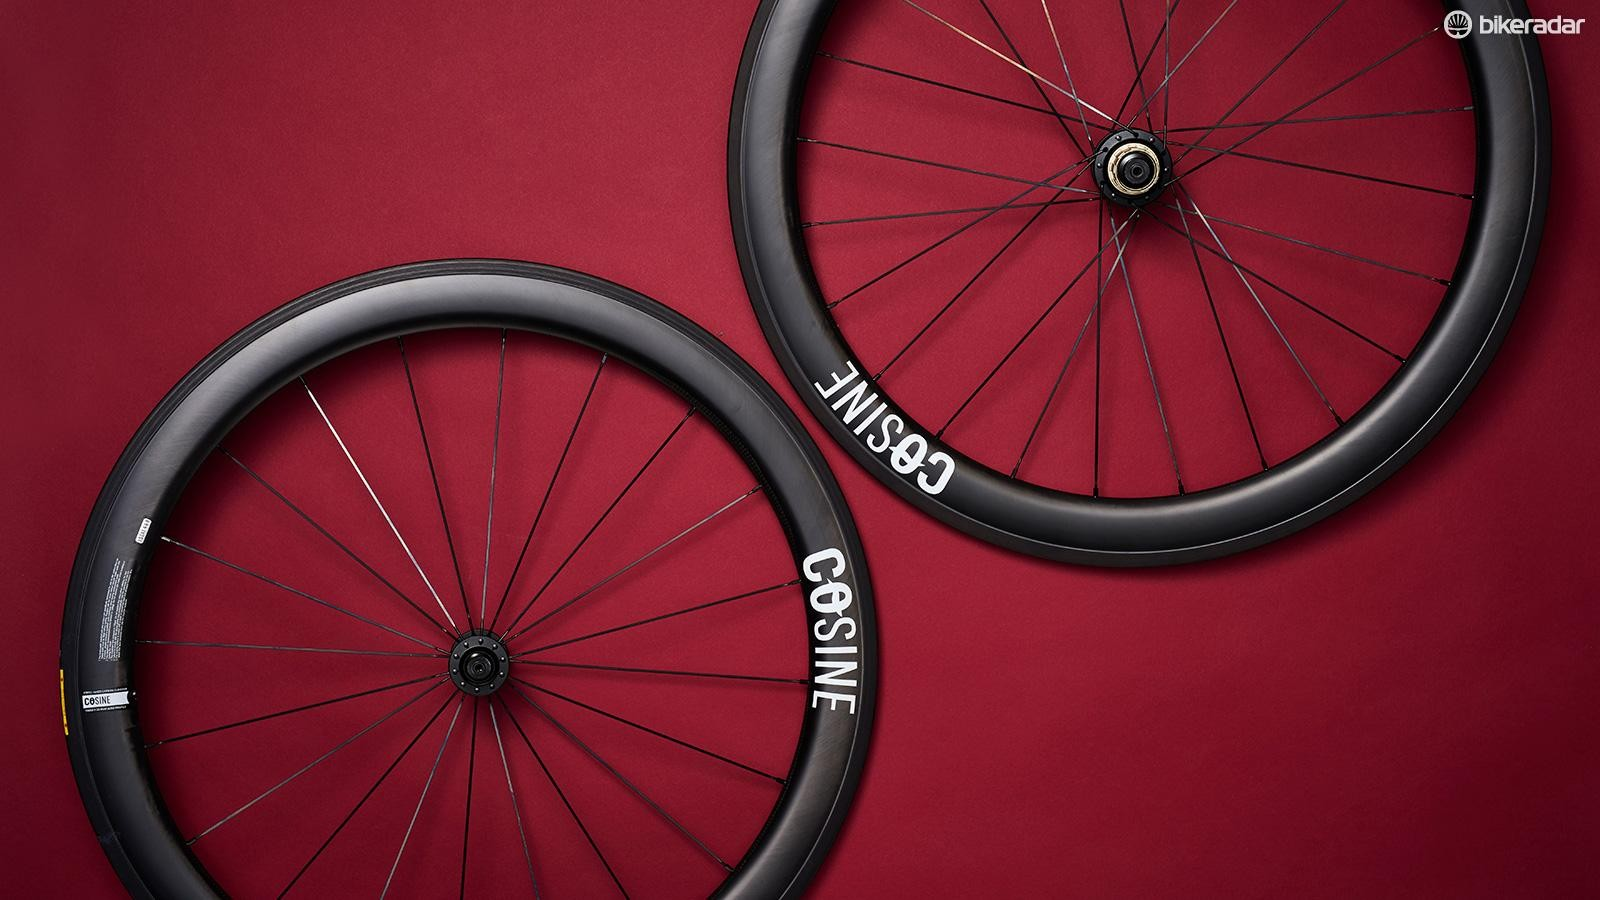 The Cosine Carbon Clincher wheelset